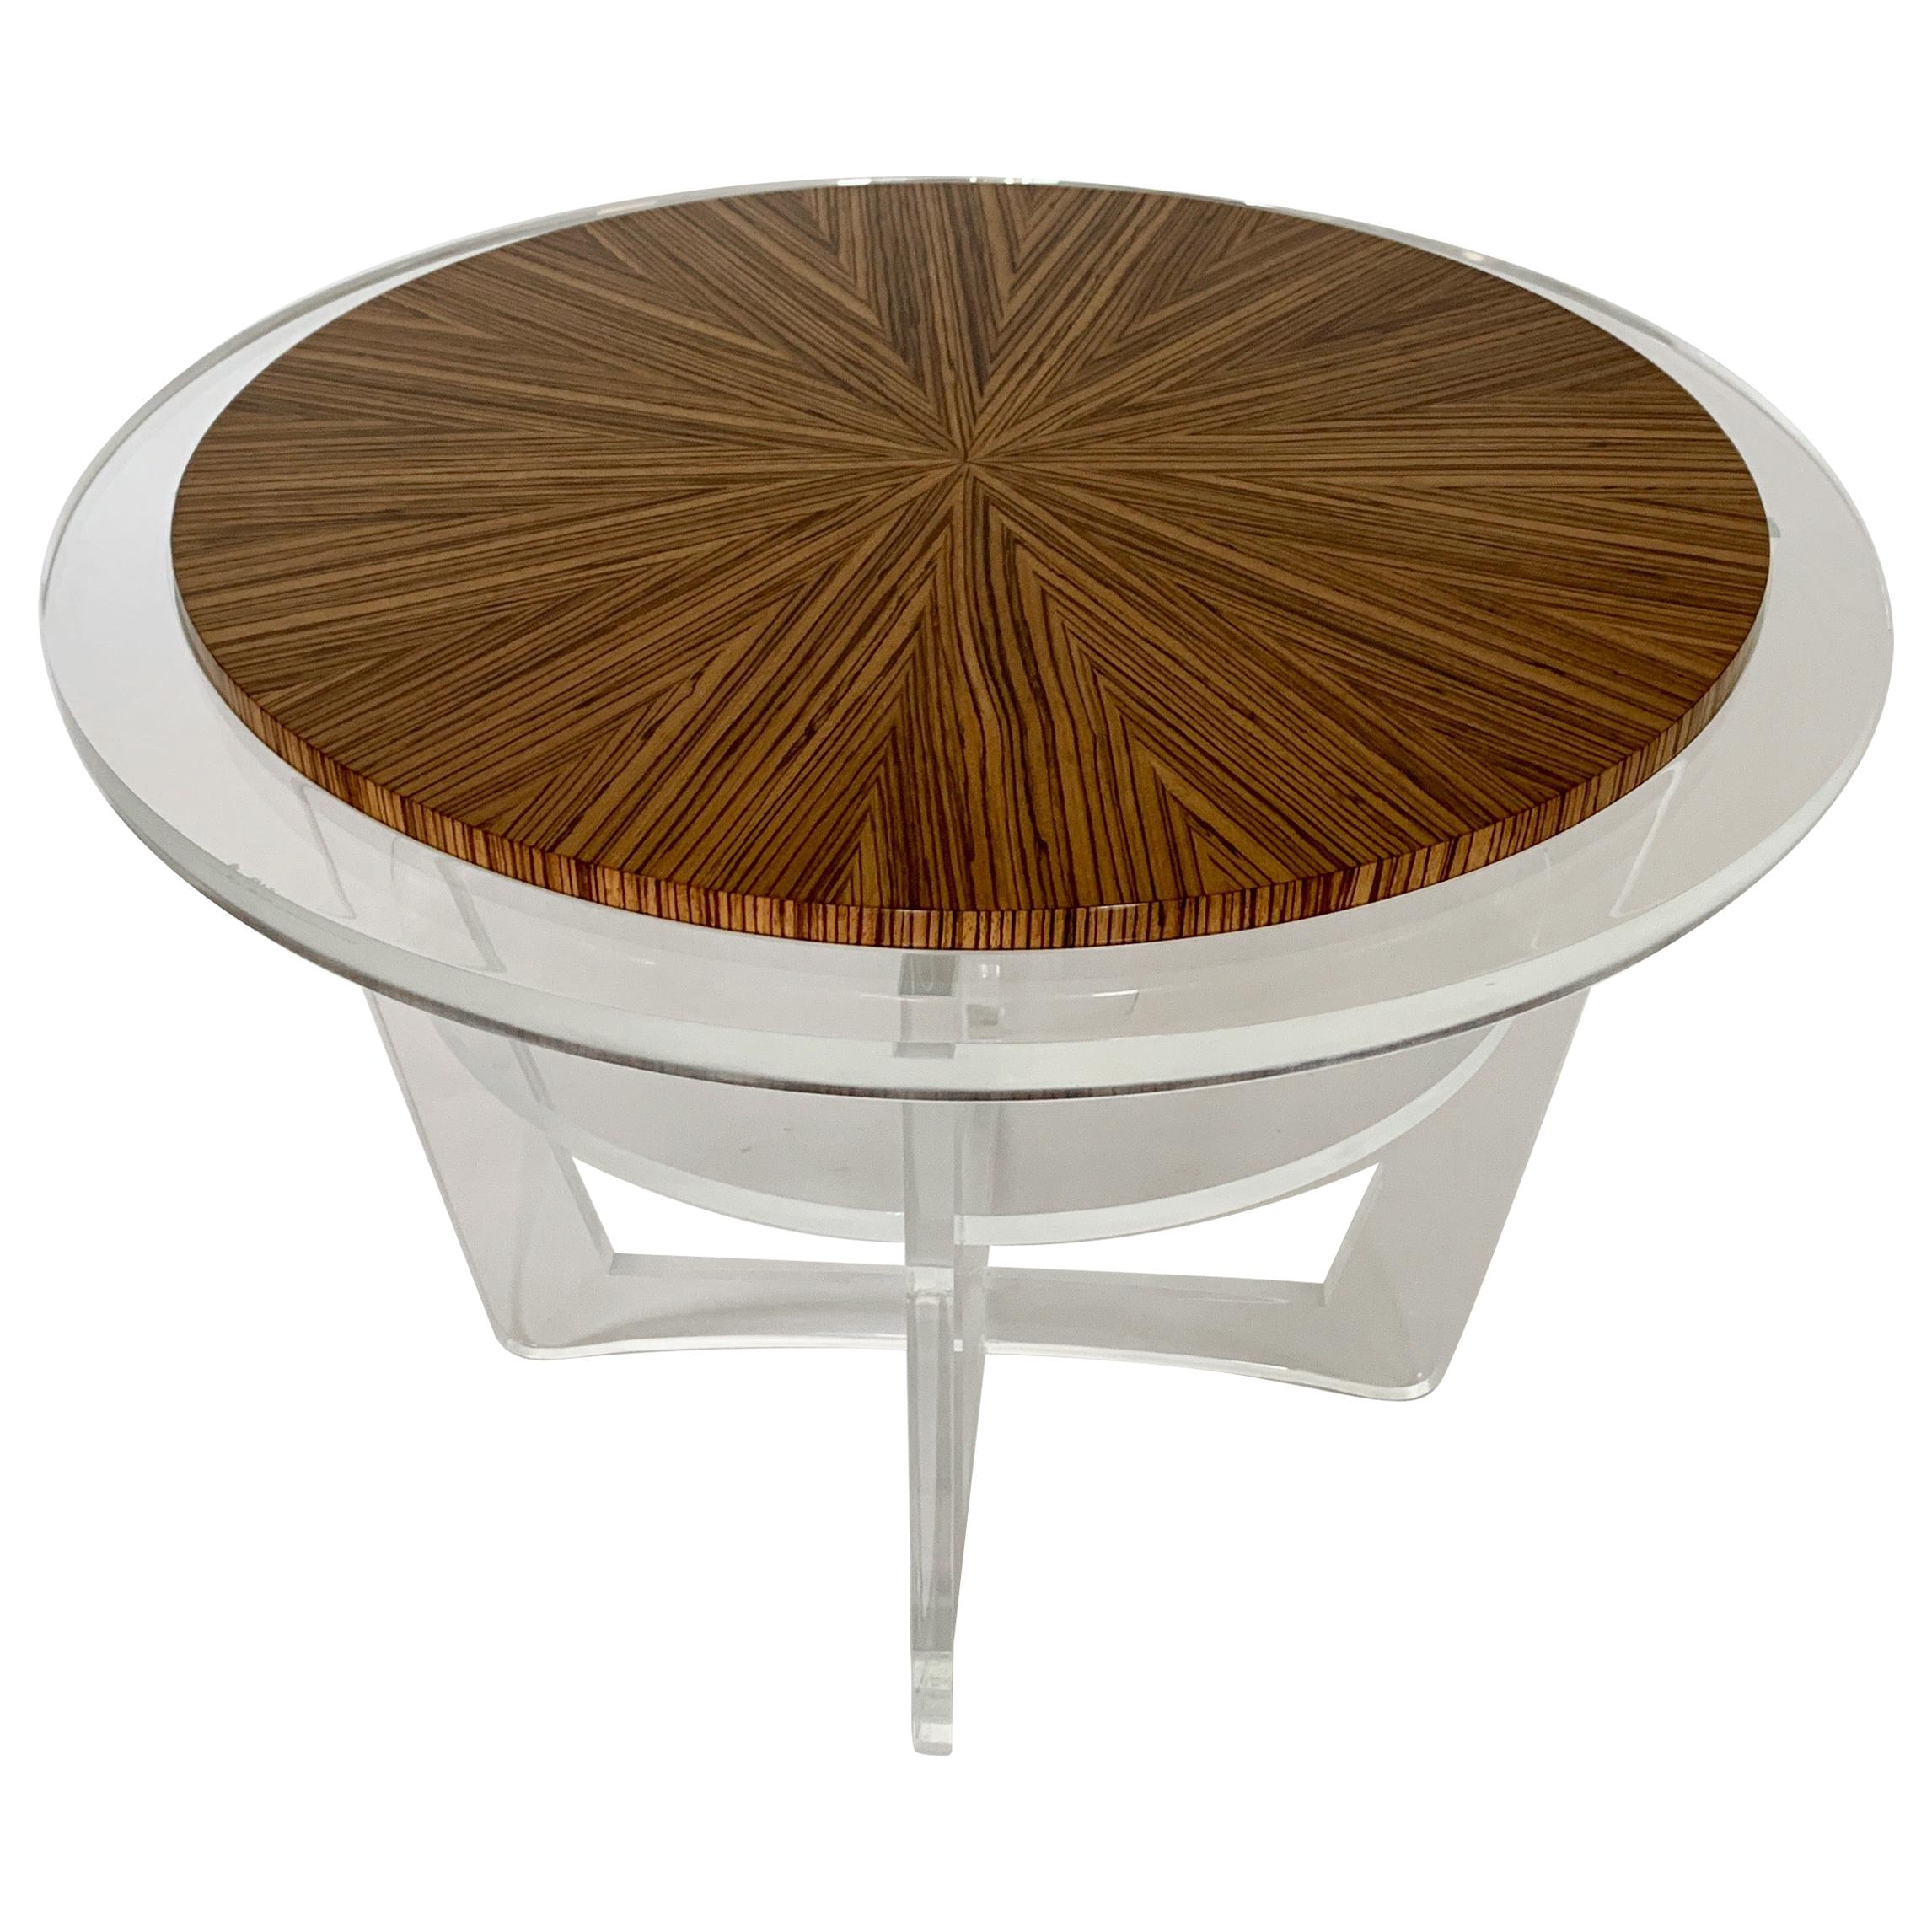 Modern Acrylic and Zebra Wood Side Table In Stock